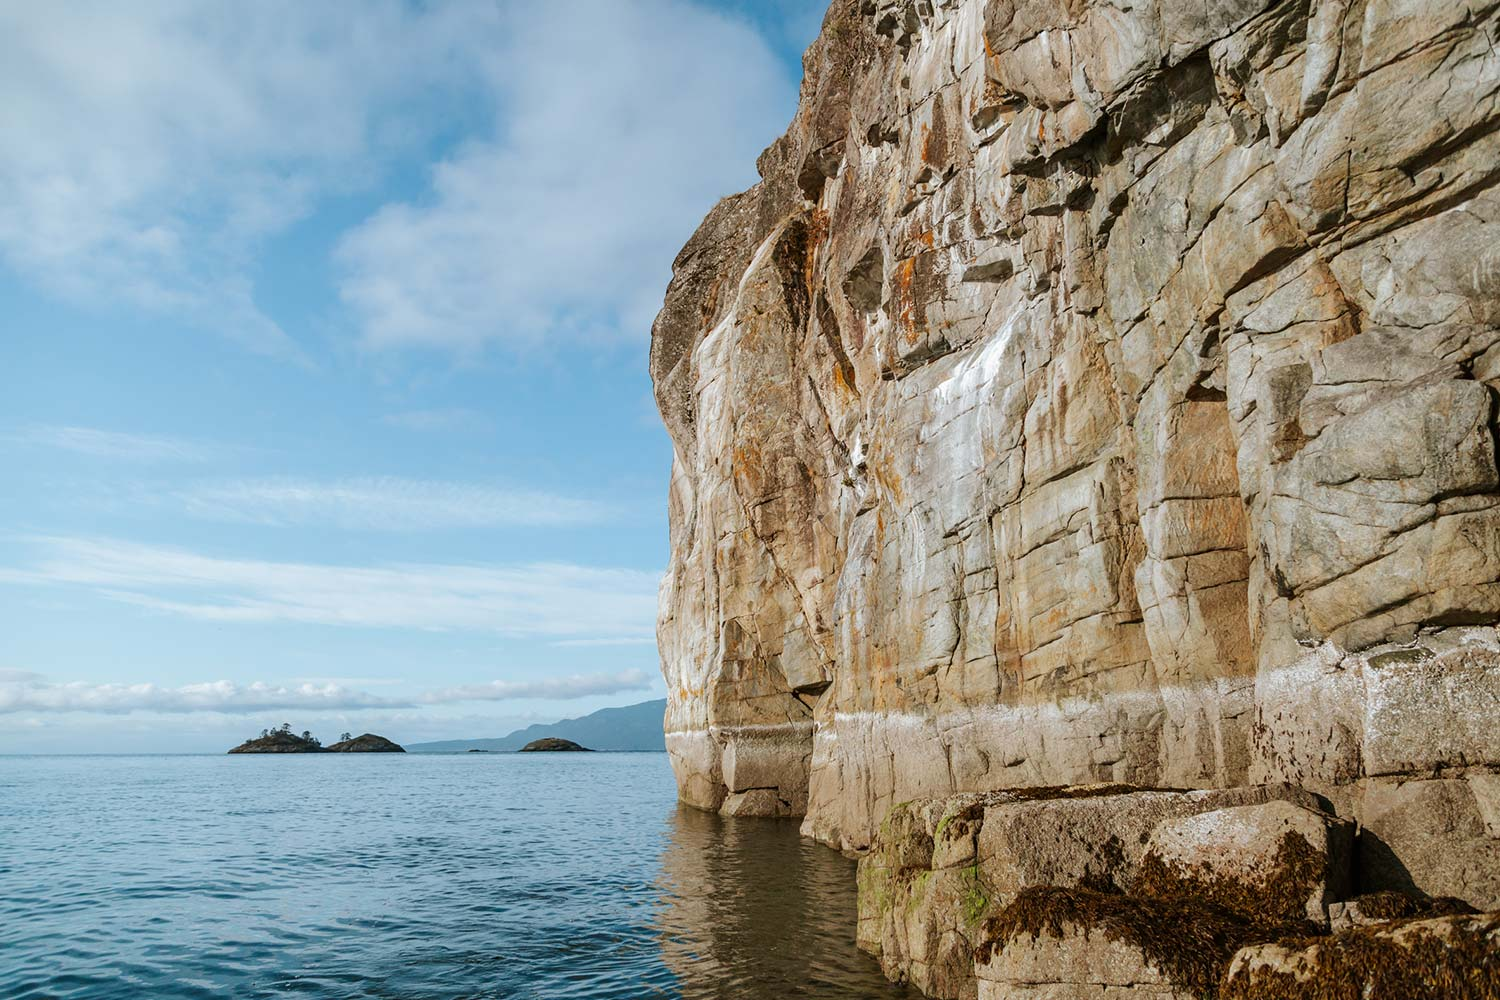 Rocky cliffs and bays can be found on the 60kms of shoreline within the Pender Harbour. Explore by renting a boat or kayak.